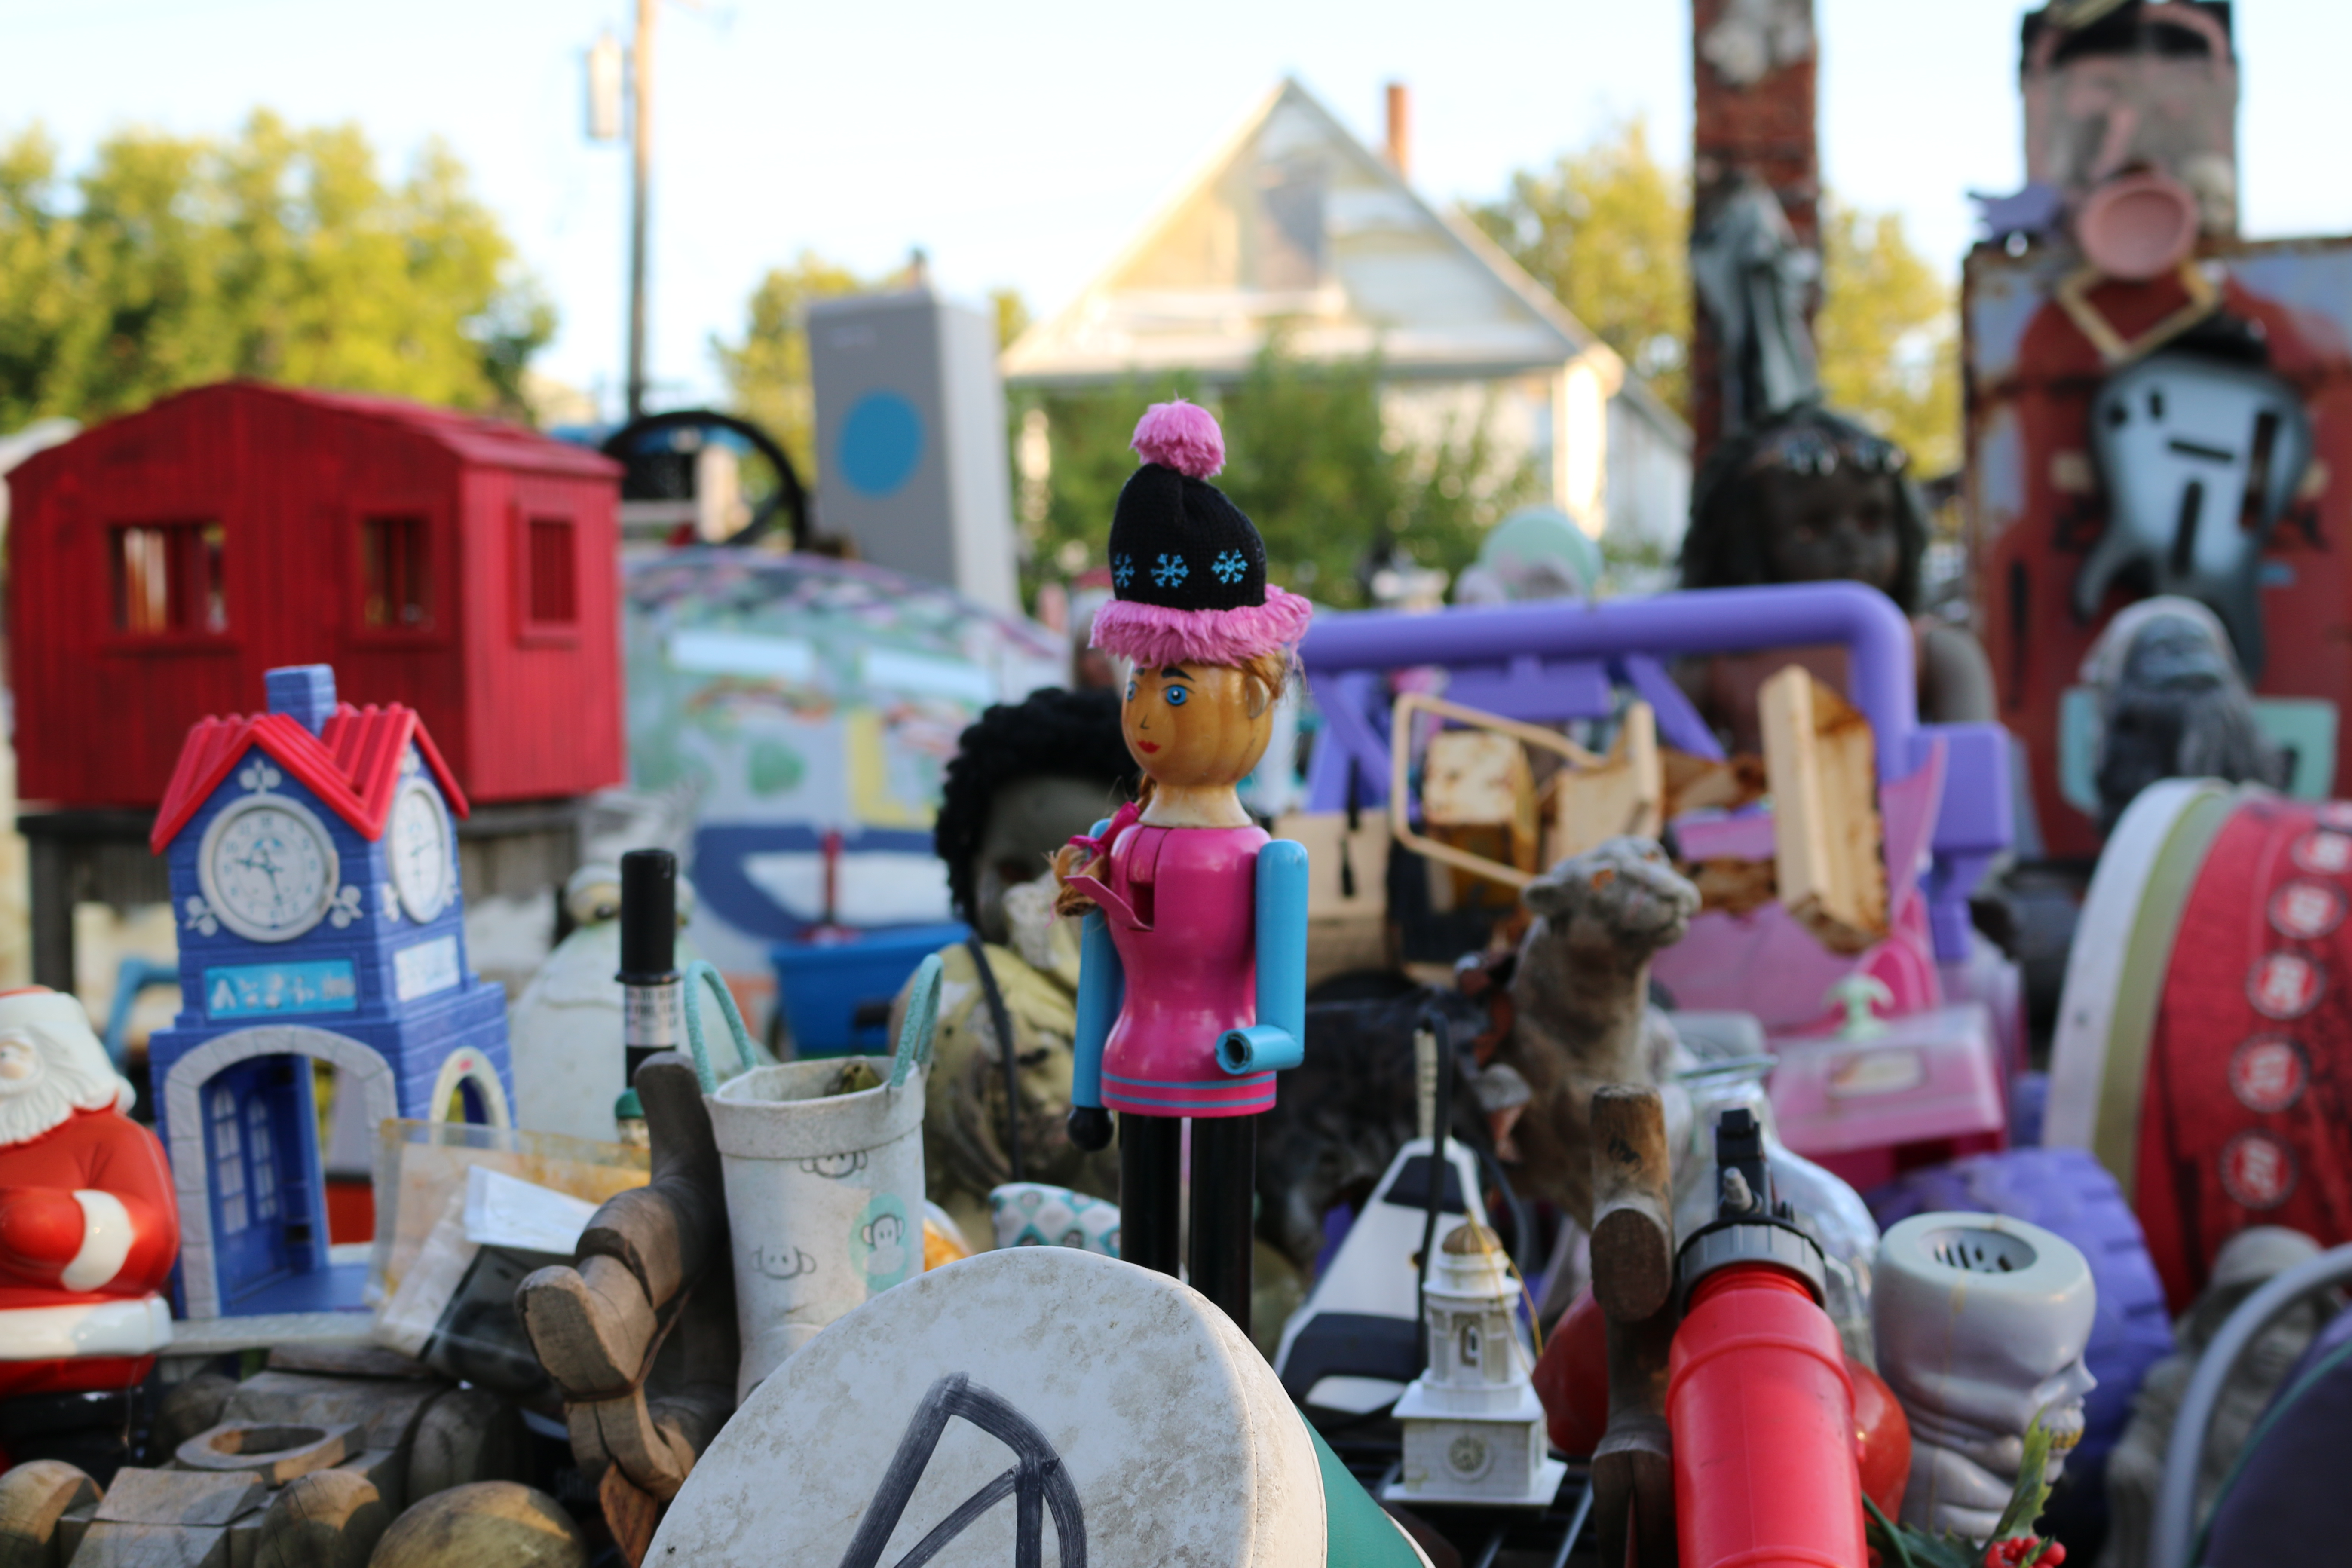 Close up of pink wooden doll with knit cap midst random toys.